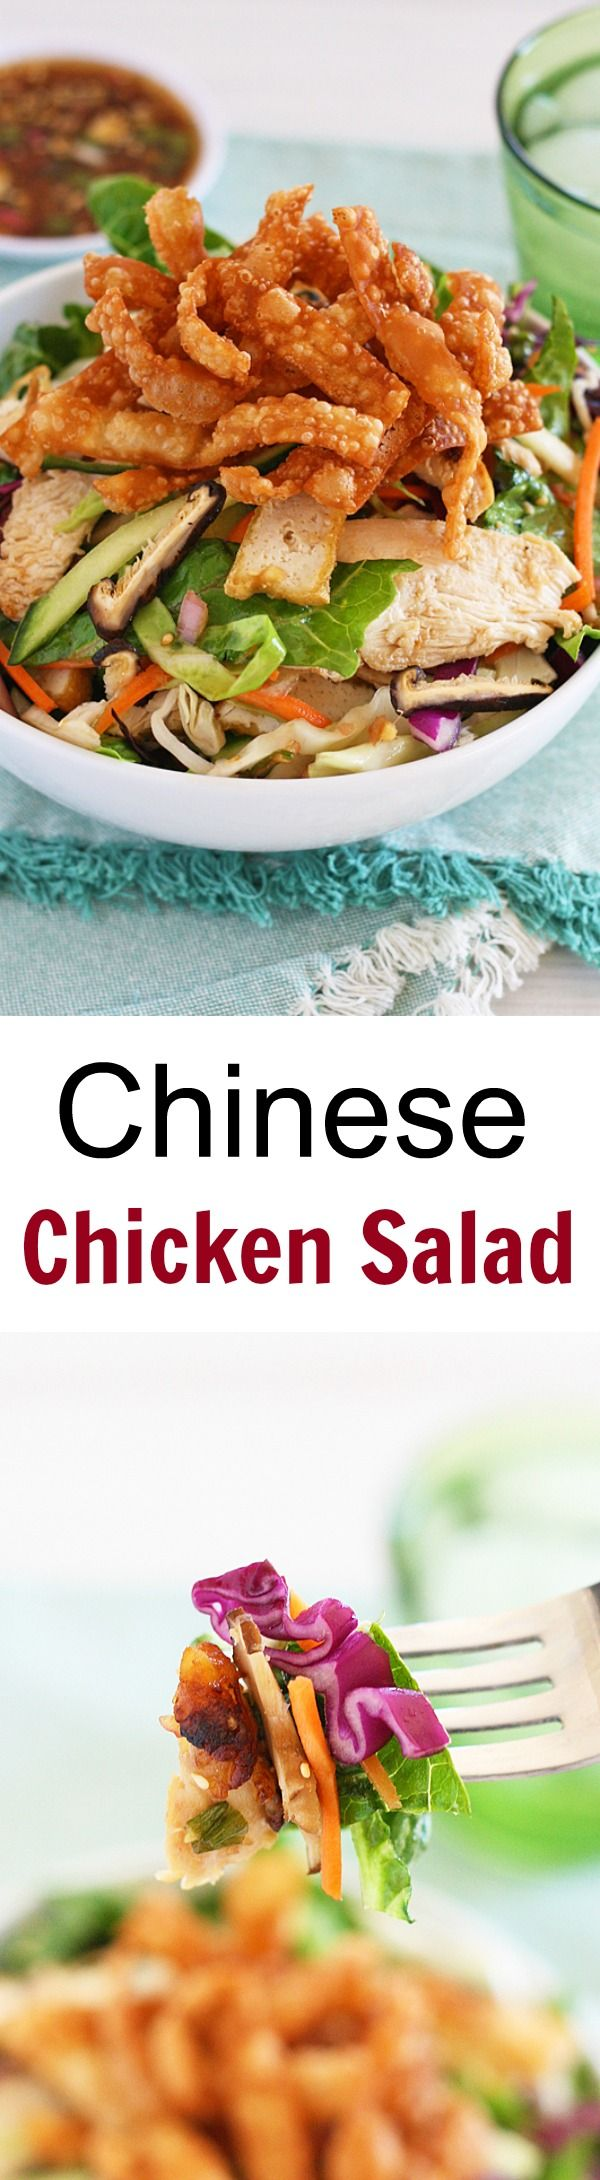 A chicken salad recipe that is healthy and so easy to make. It tastes so good you'll want to eat this Chinese chicken salad every day | rasamalaysia.com